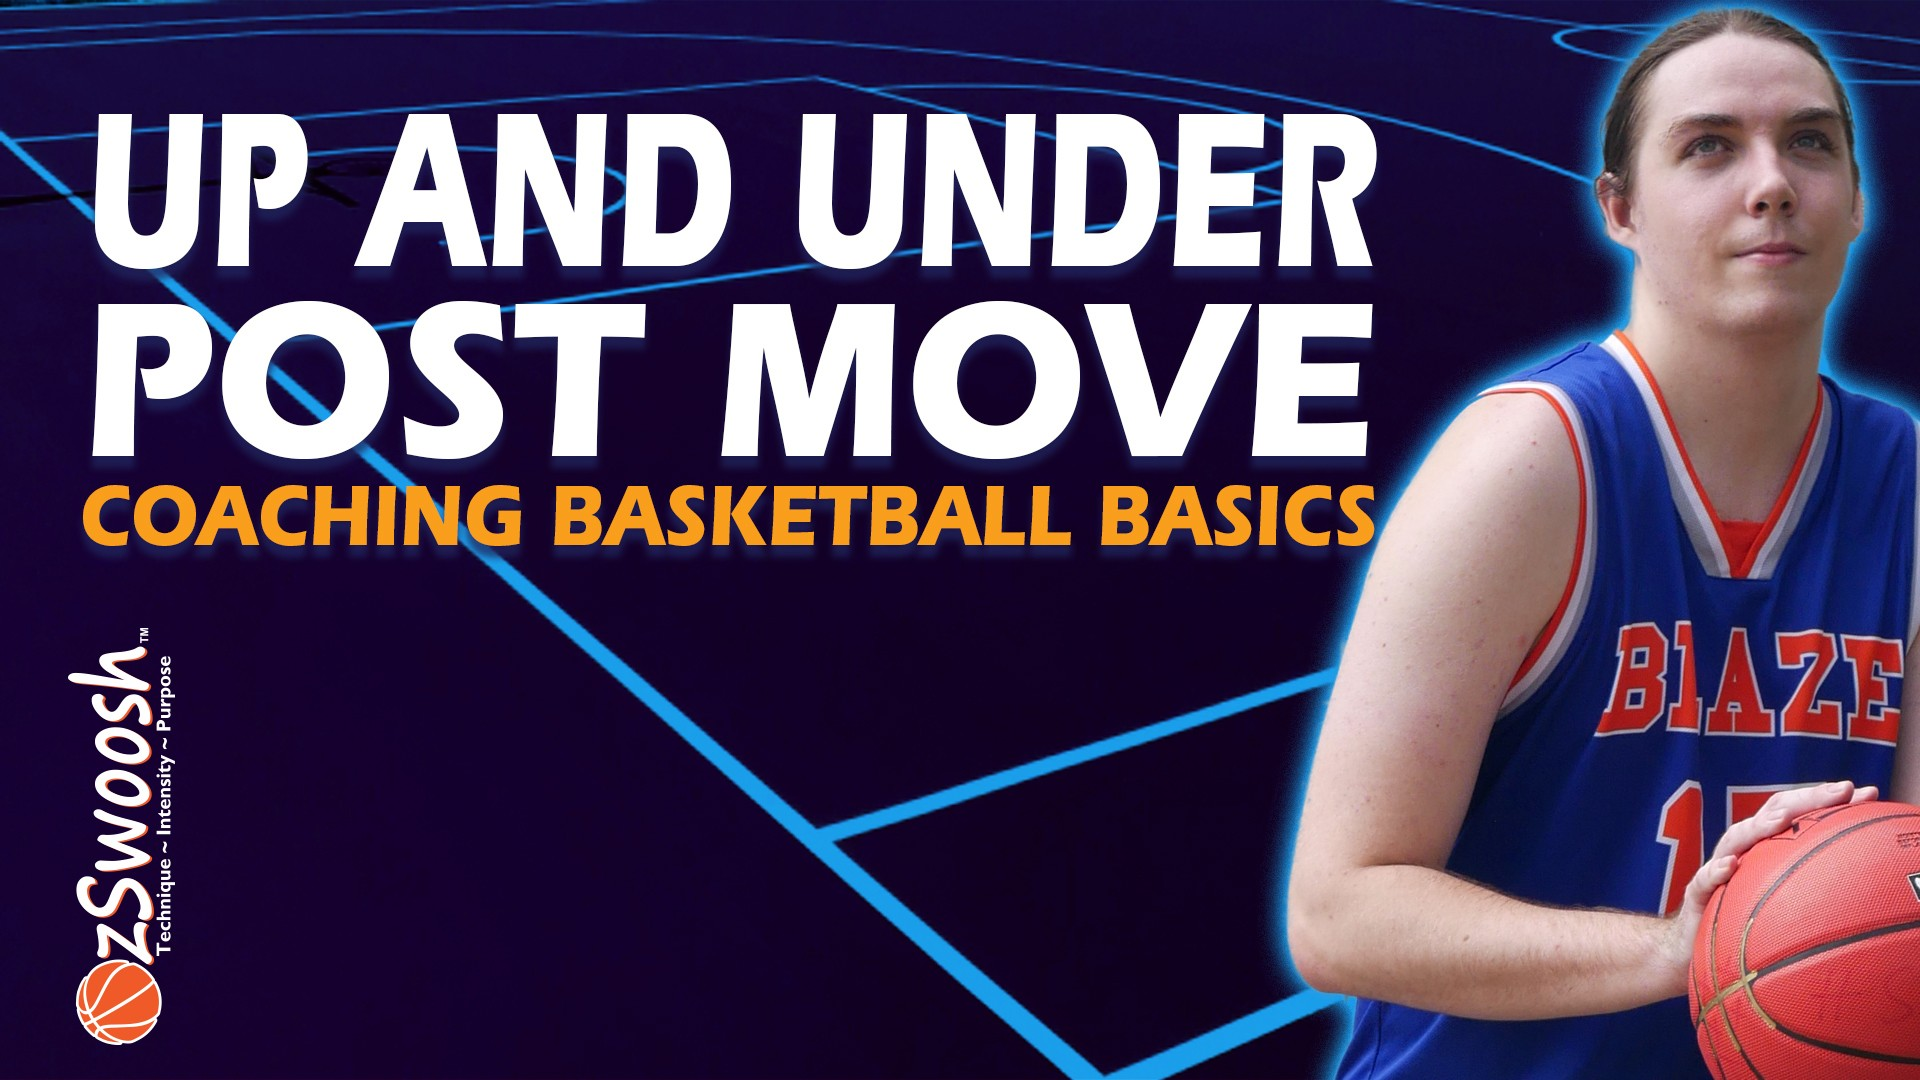 Up and Under Basketball Post Move - Coaching Basketball Fundamentals